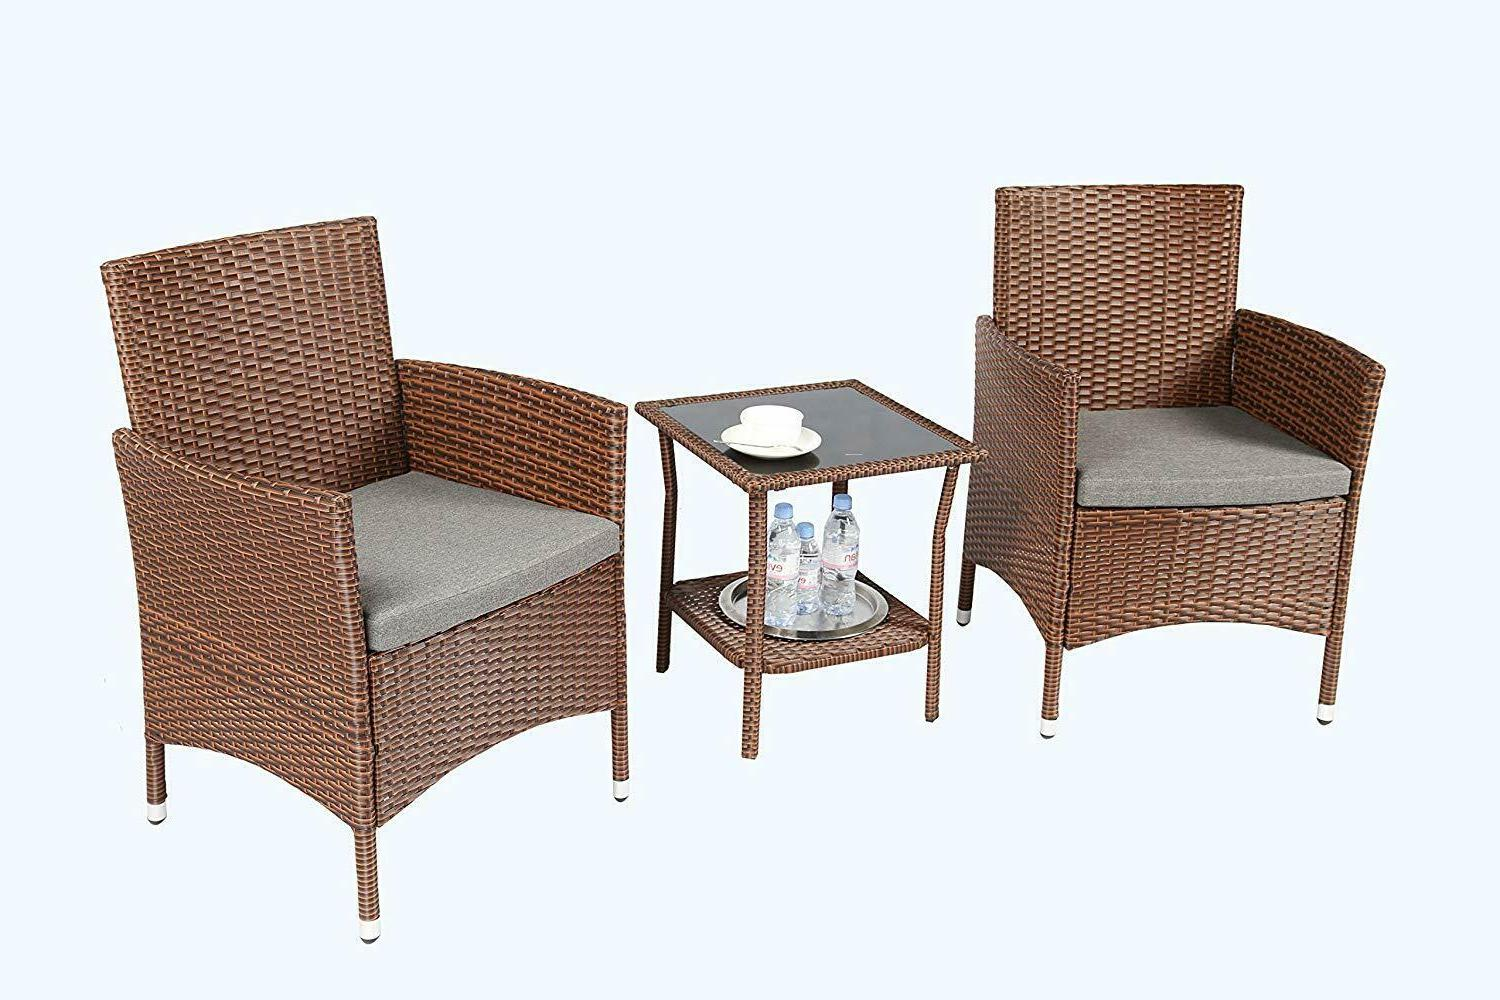 Baner Pieces Outdoor Furniture Complete Cushion PE Wicker